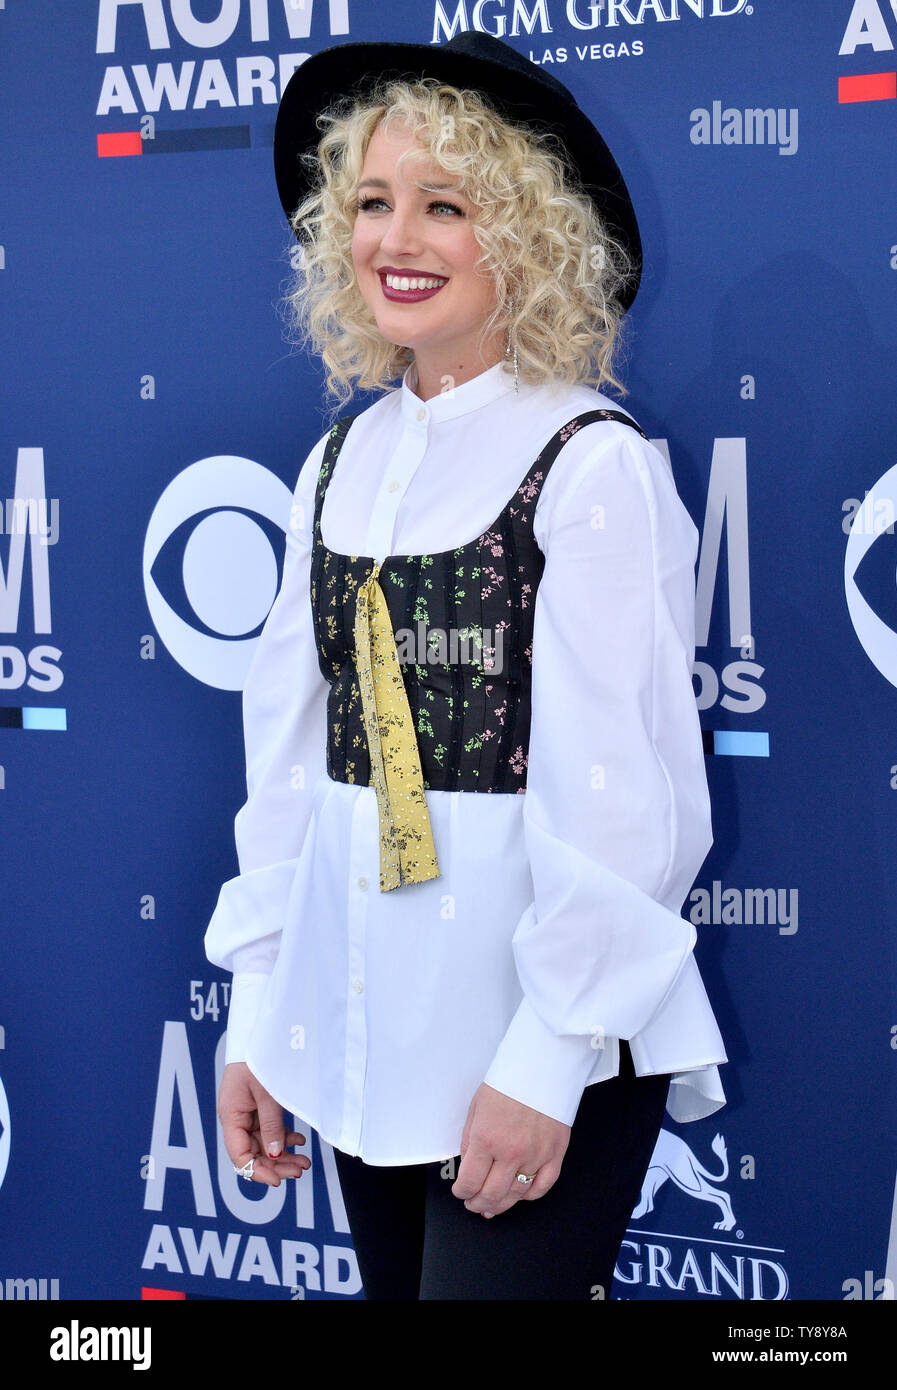 Cam attends the 54th annual Academy of Country Music Awards